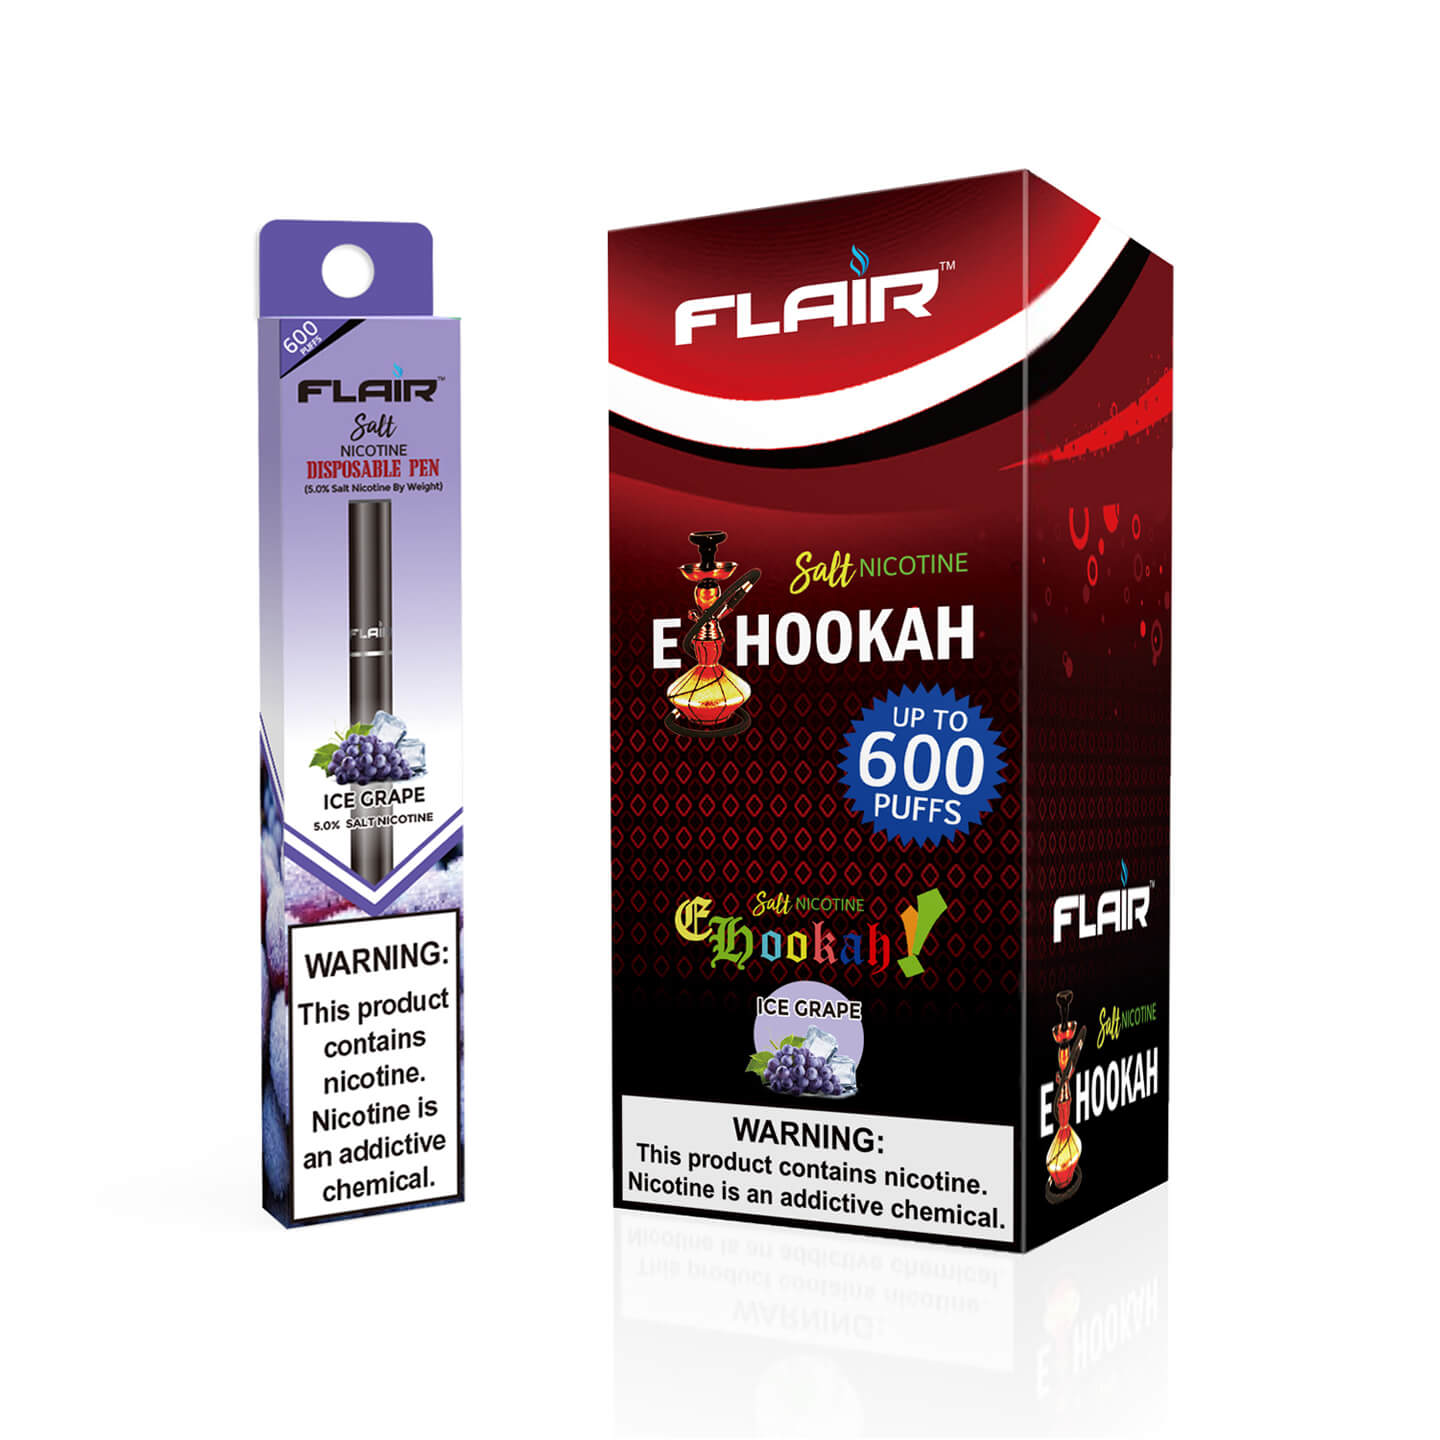 Flair Salt Nicotine Disposable Pen (Ice Grape)